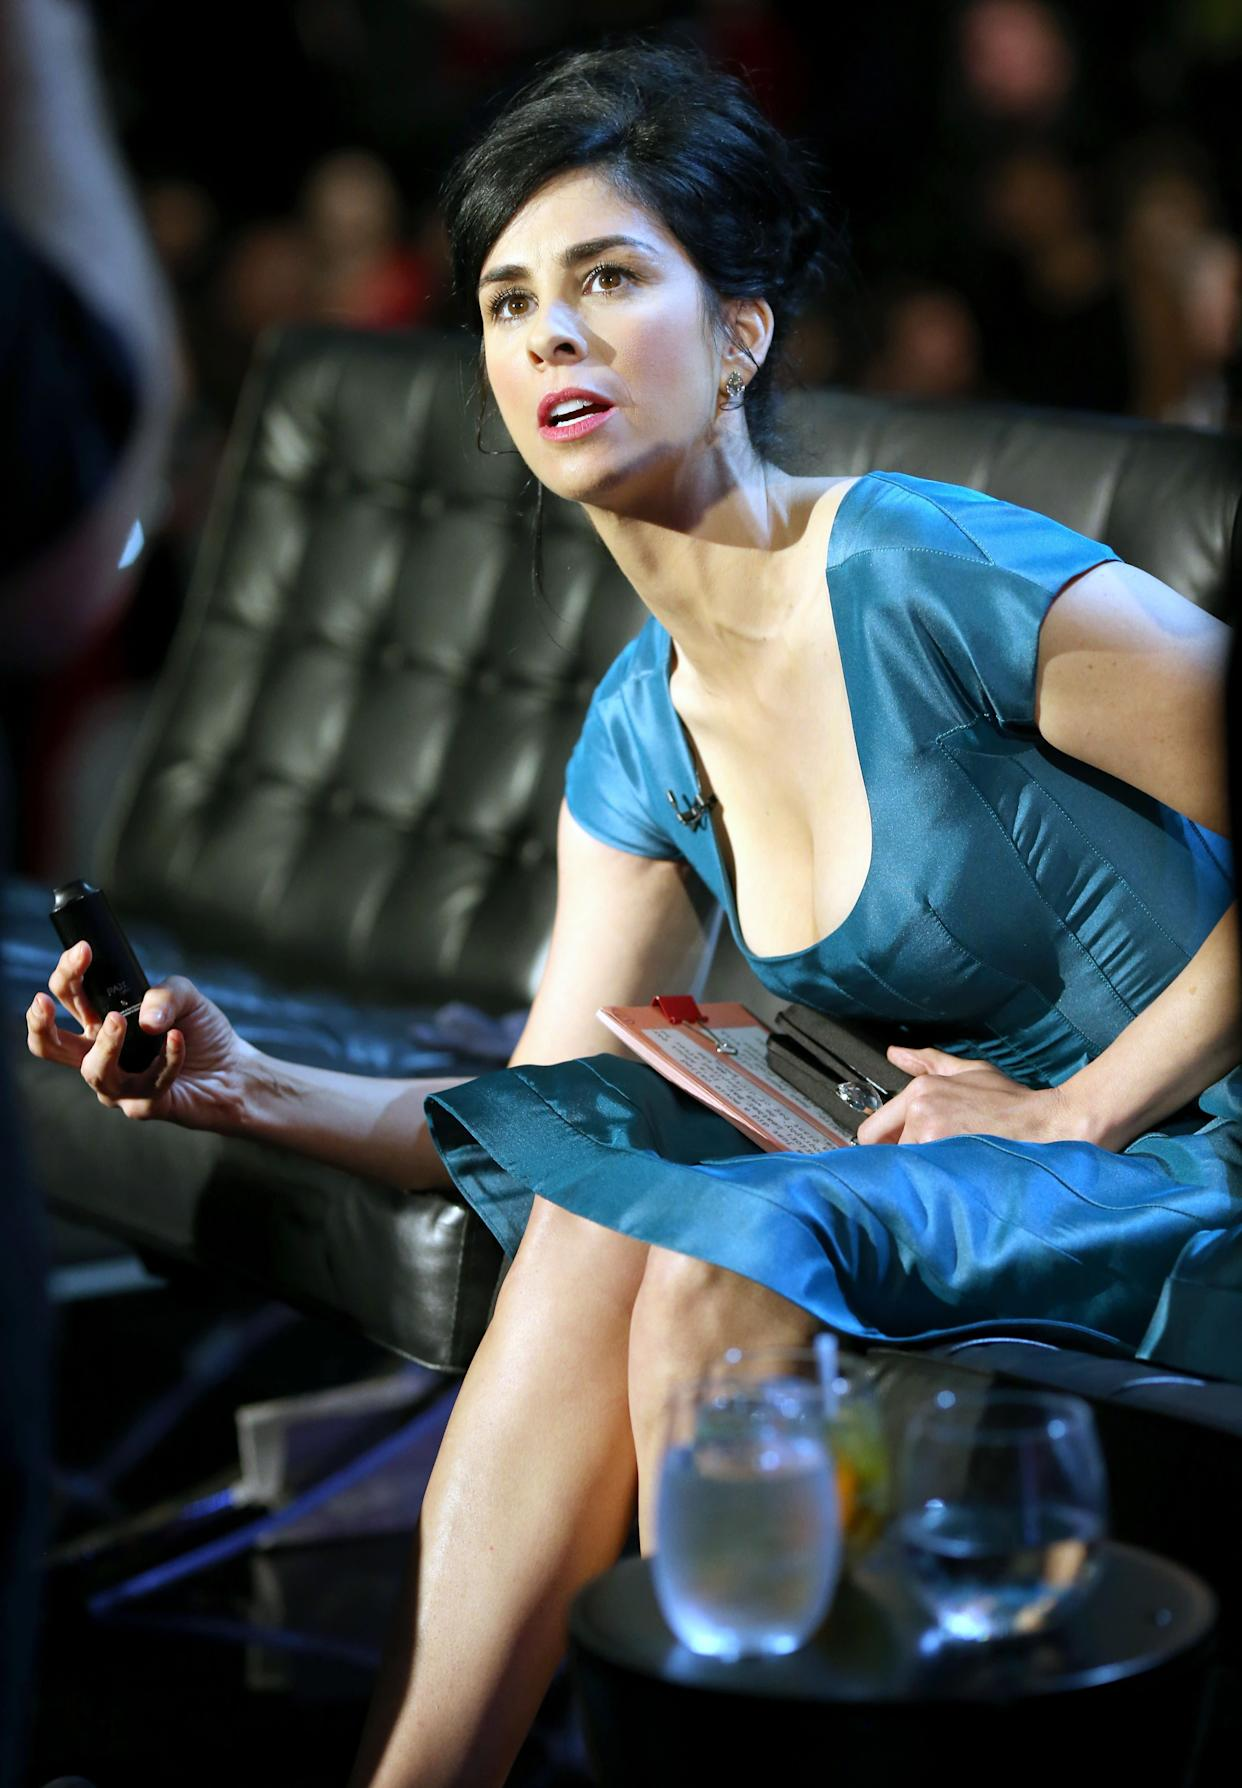 CULVER CITY, CA - AUGUST 25: Comedienne Sarah Silverman onstage during The Comedy Central Roast of James Franco at Culver Studios on August 25, 2013 in Culver City, California. The Comedy Central Roast Of James Franco will air on September 2 at 10:00 p.m. ET/PT. (Photo by Christopher Polk/Getty Images for Comedy Central)